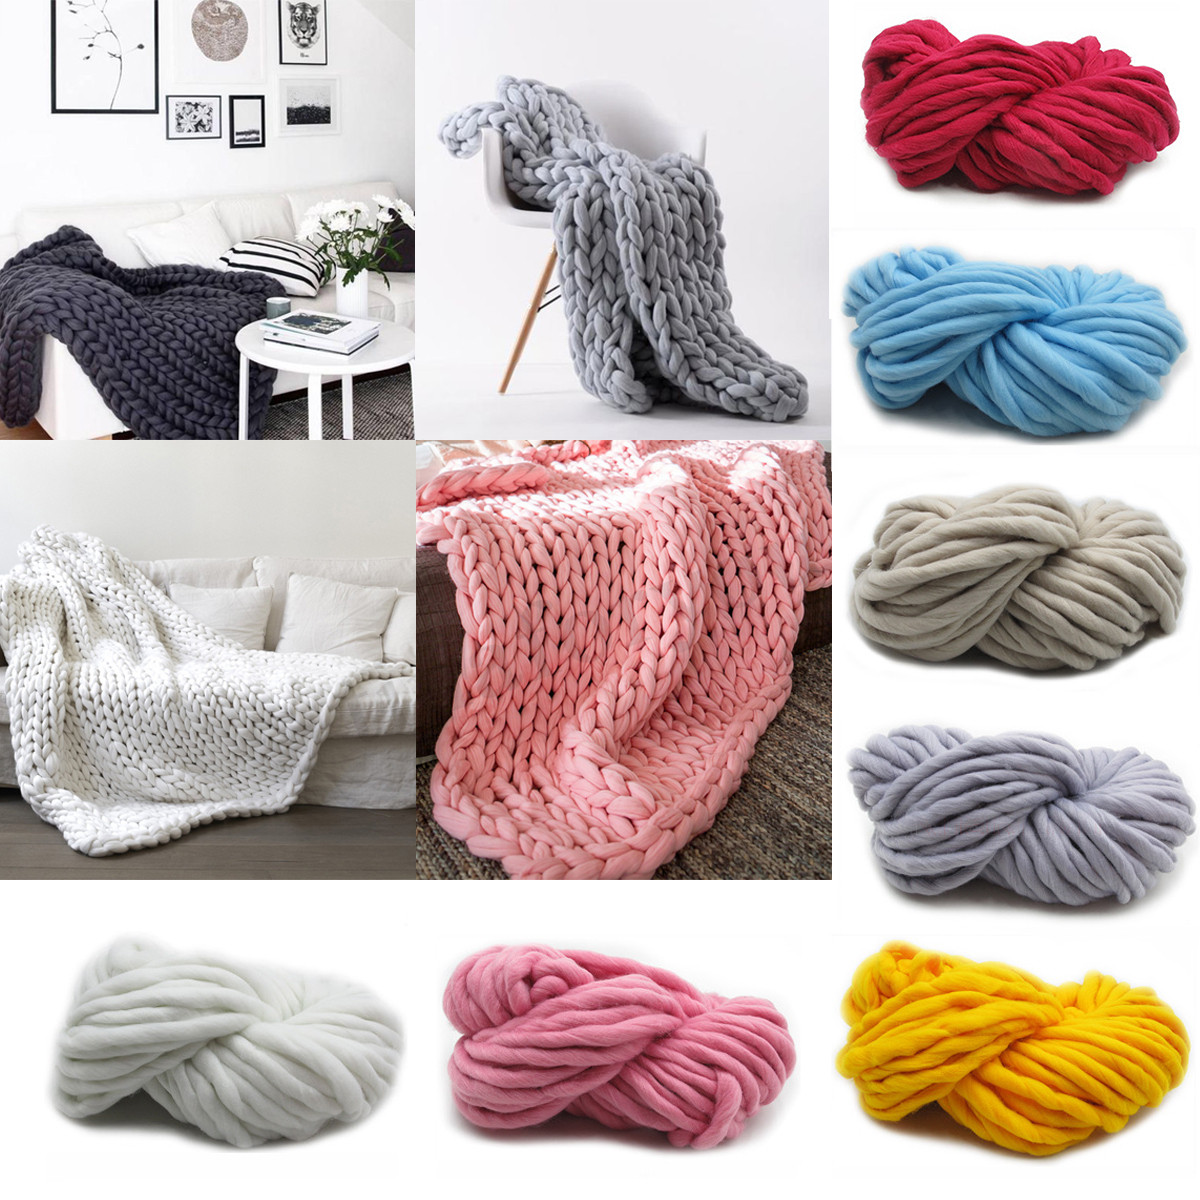 Thick Yarn Blanket Elegant soft Warm Handmade Chunky Knit Blanket Thick Yarn Of Perfect 41 Images Thick Yarn Blanket